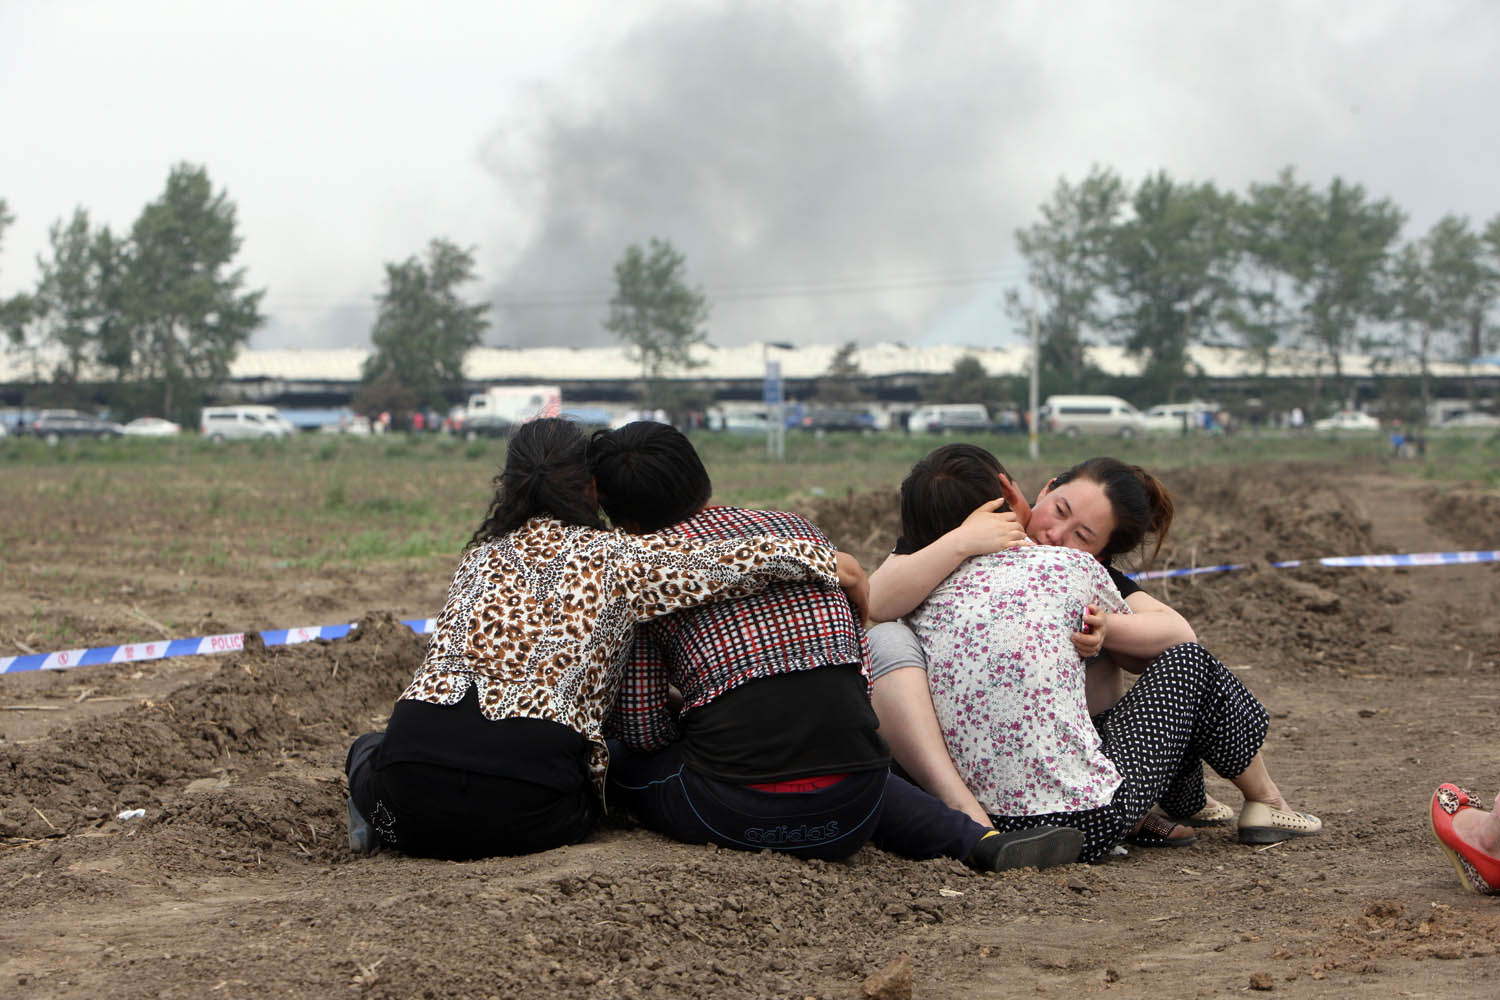 June 3, 2013. Victims' relatives at the scene after a fire that killed 119 and injured 54 people at a locked poultry slaughterhouse in Dehui, northeast China's Jilin province.